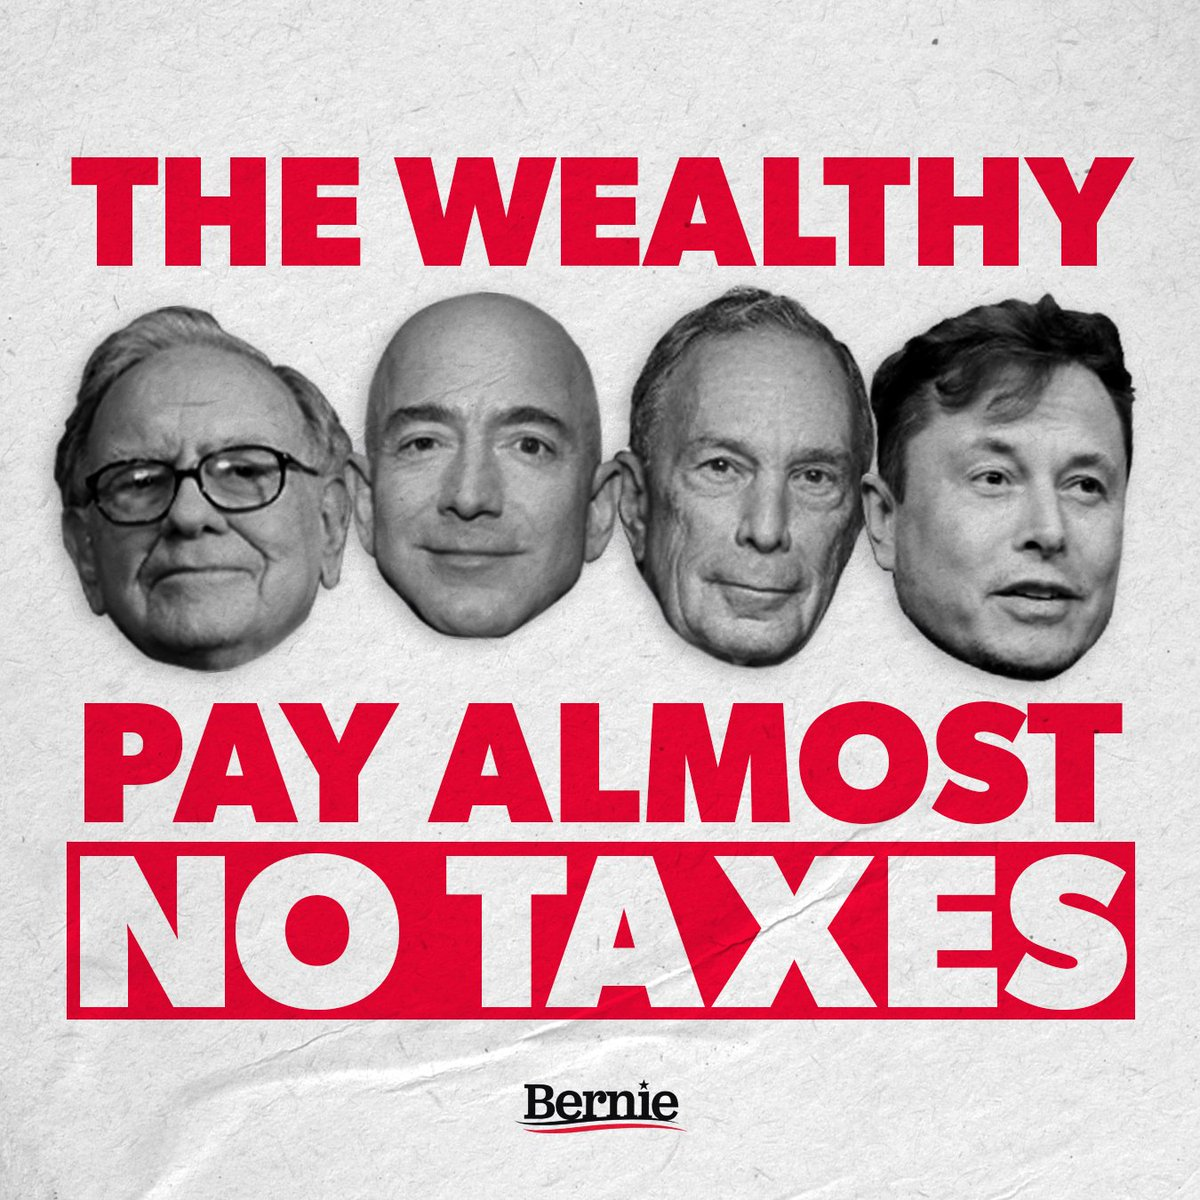 Why should we be surprised that in a corrupt system, the very, very richest people in this country pay, in a given year, ZERO DOLLARS in federal income tax? https://t.co/QGHQm8vMiZ